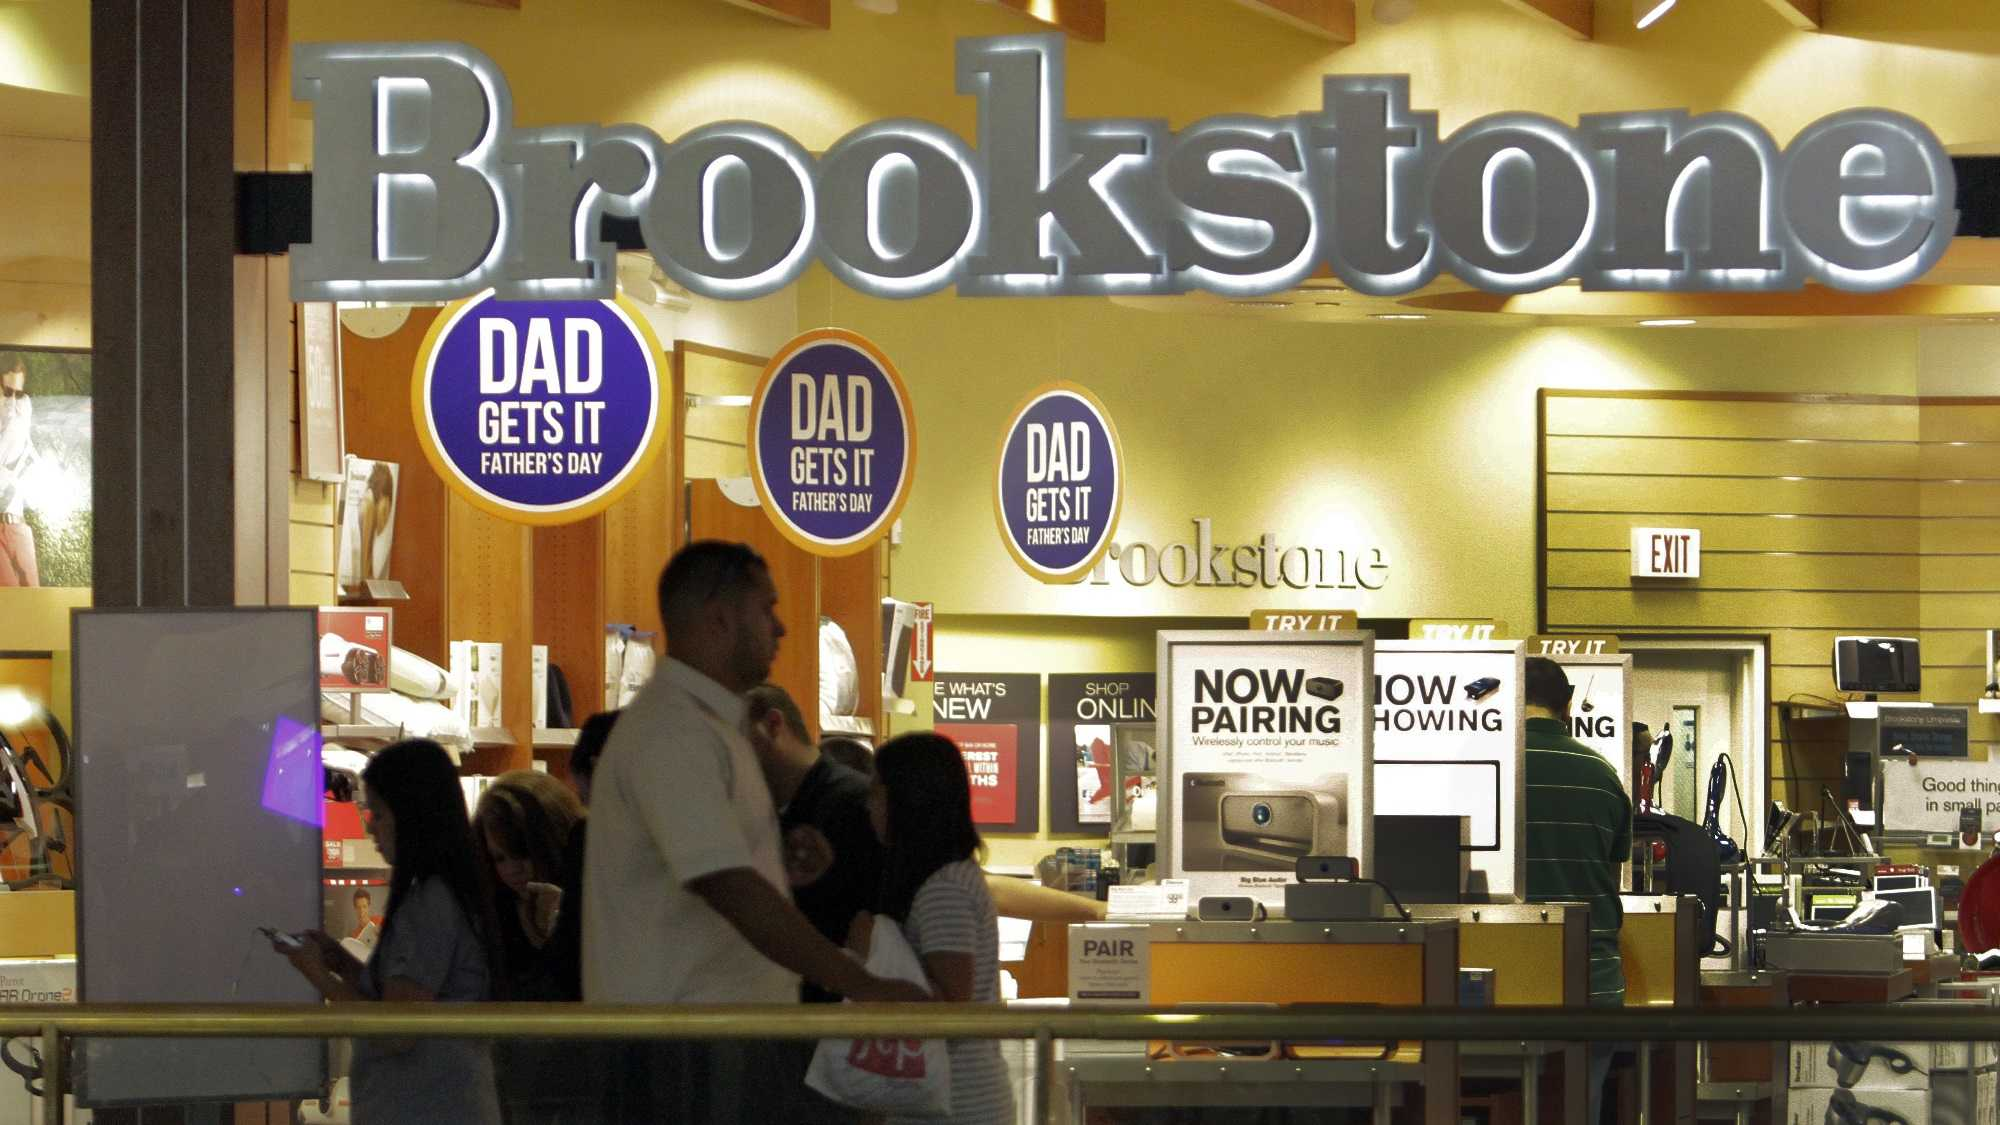 Shoppers at a Brookstone store in the Glendale Galleria on Jun. 12, 2012.